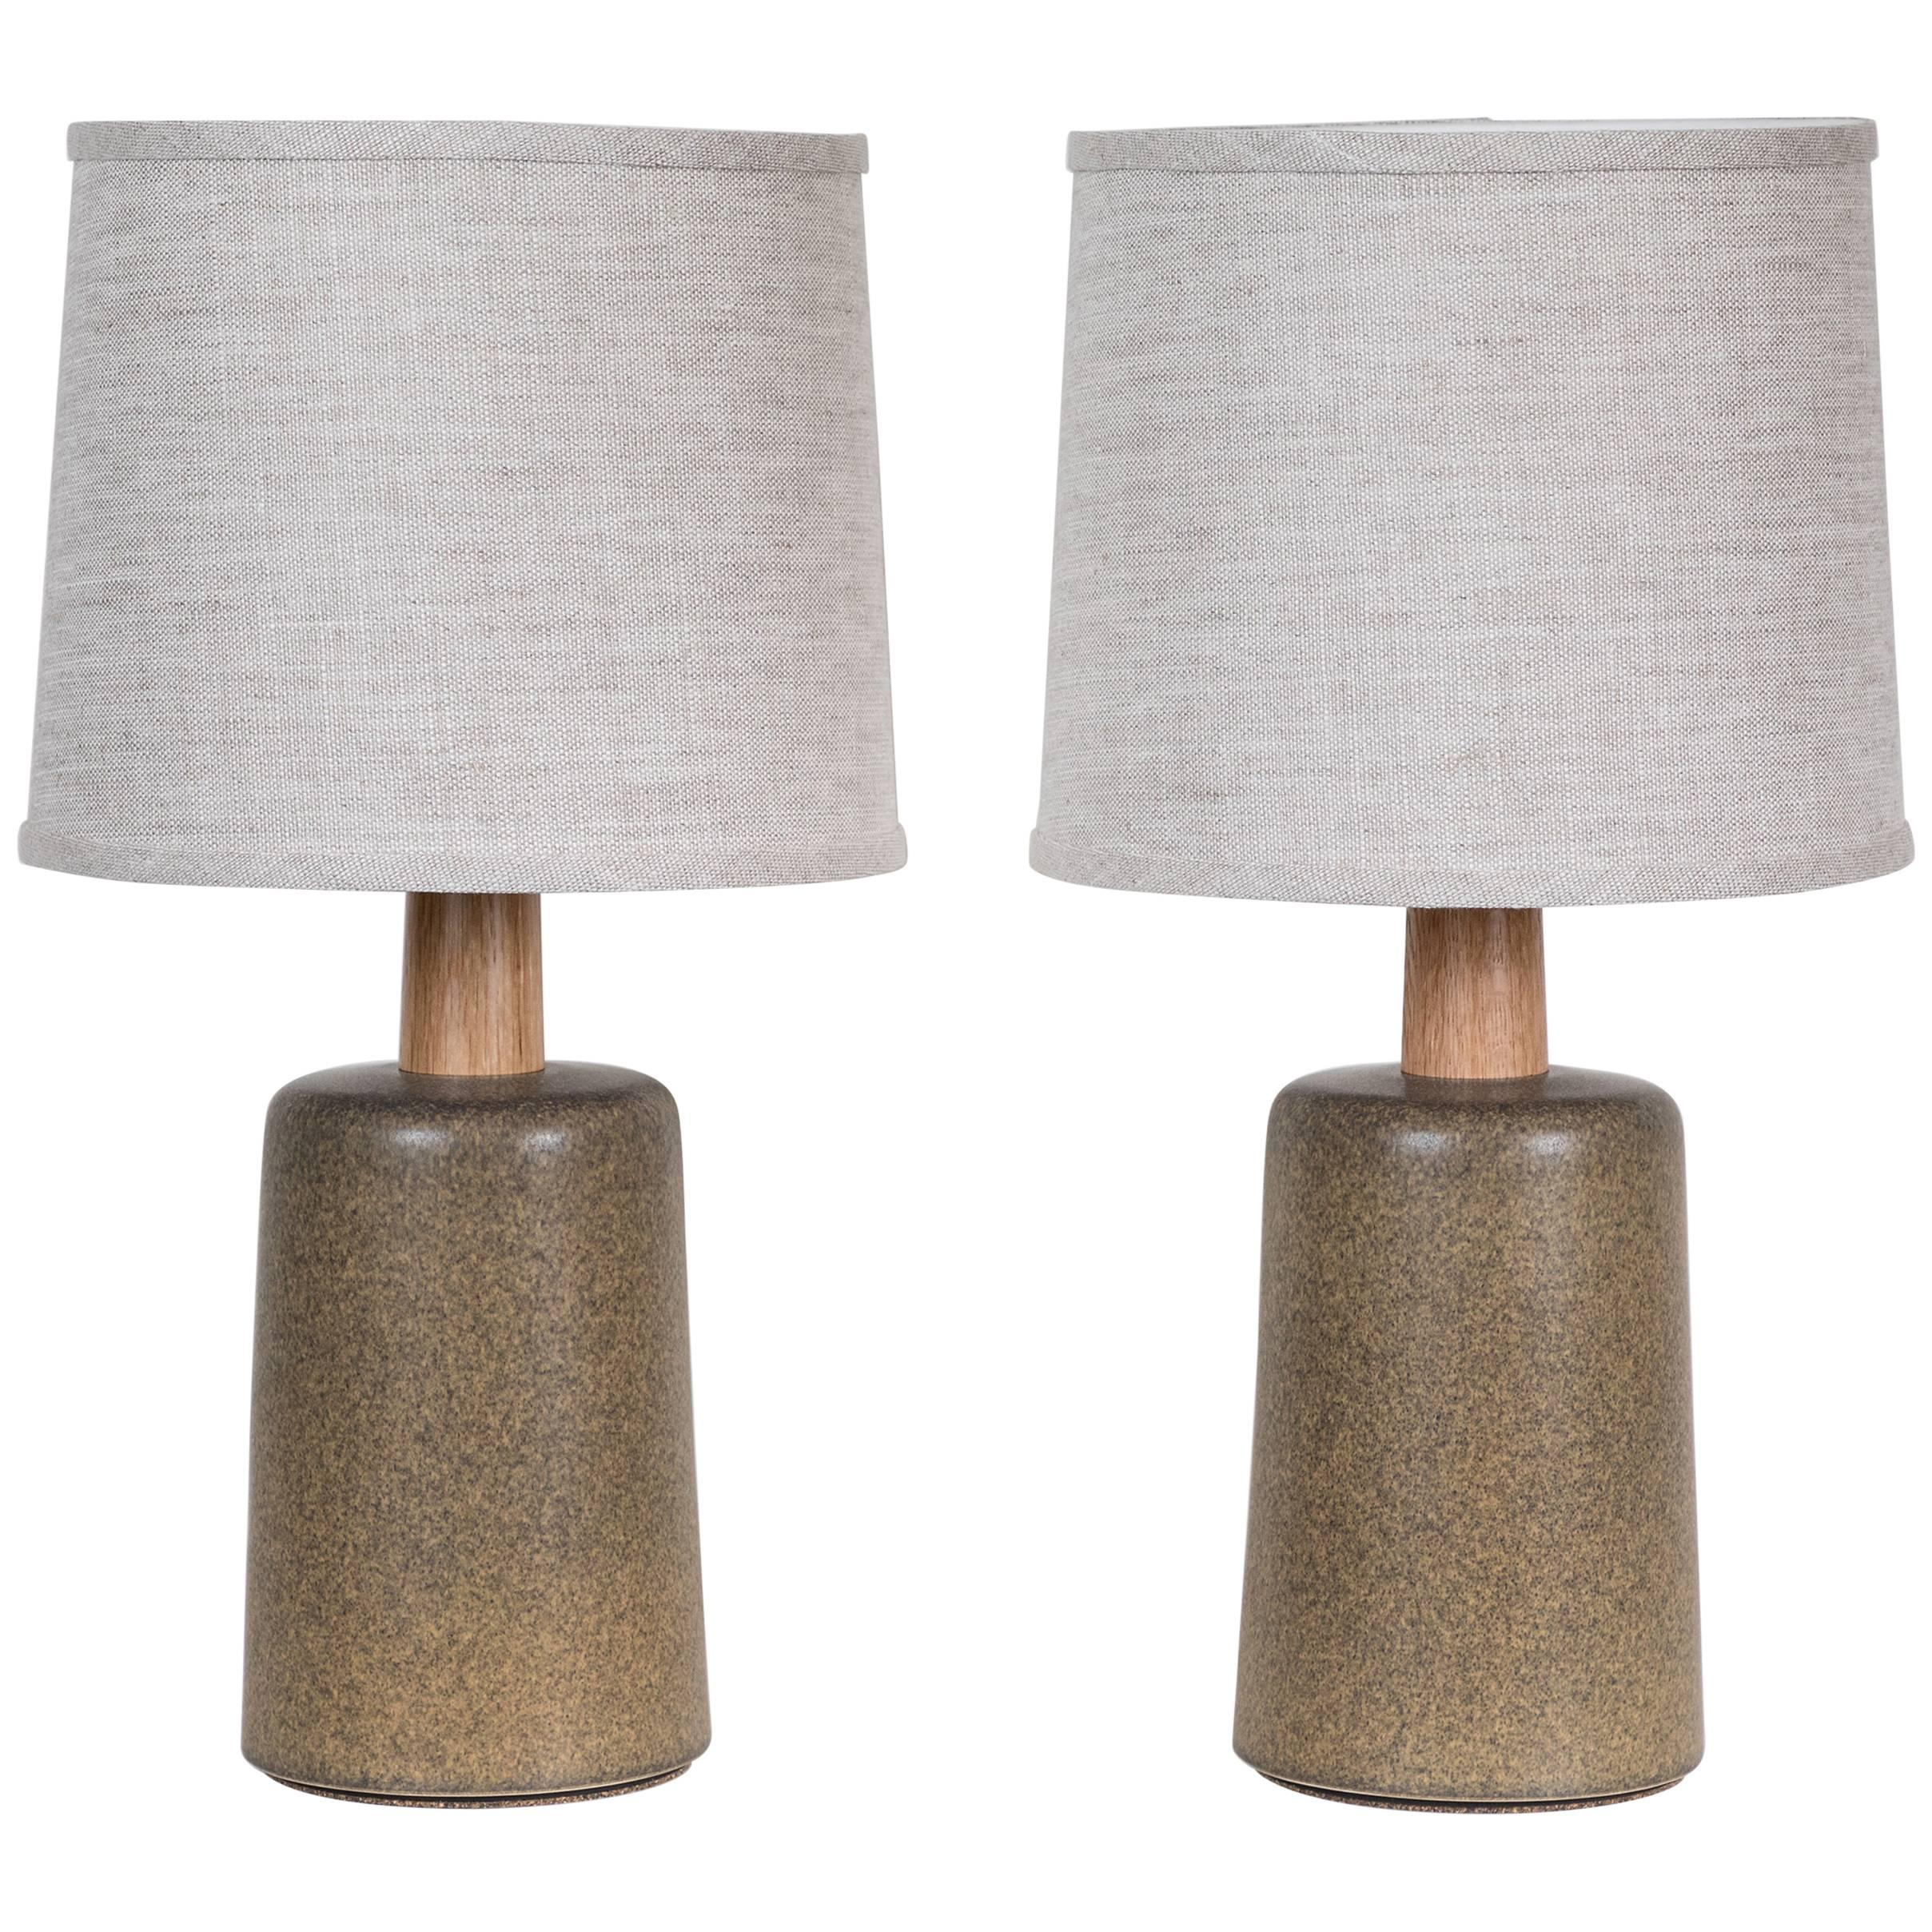 Pair of Griffin Lamps by Stone and Sawyer for Lawson-Fenning